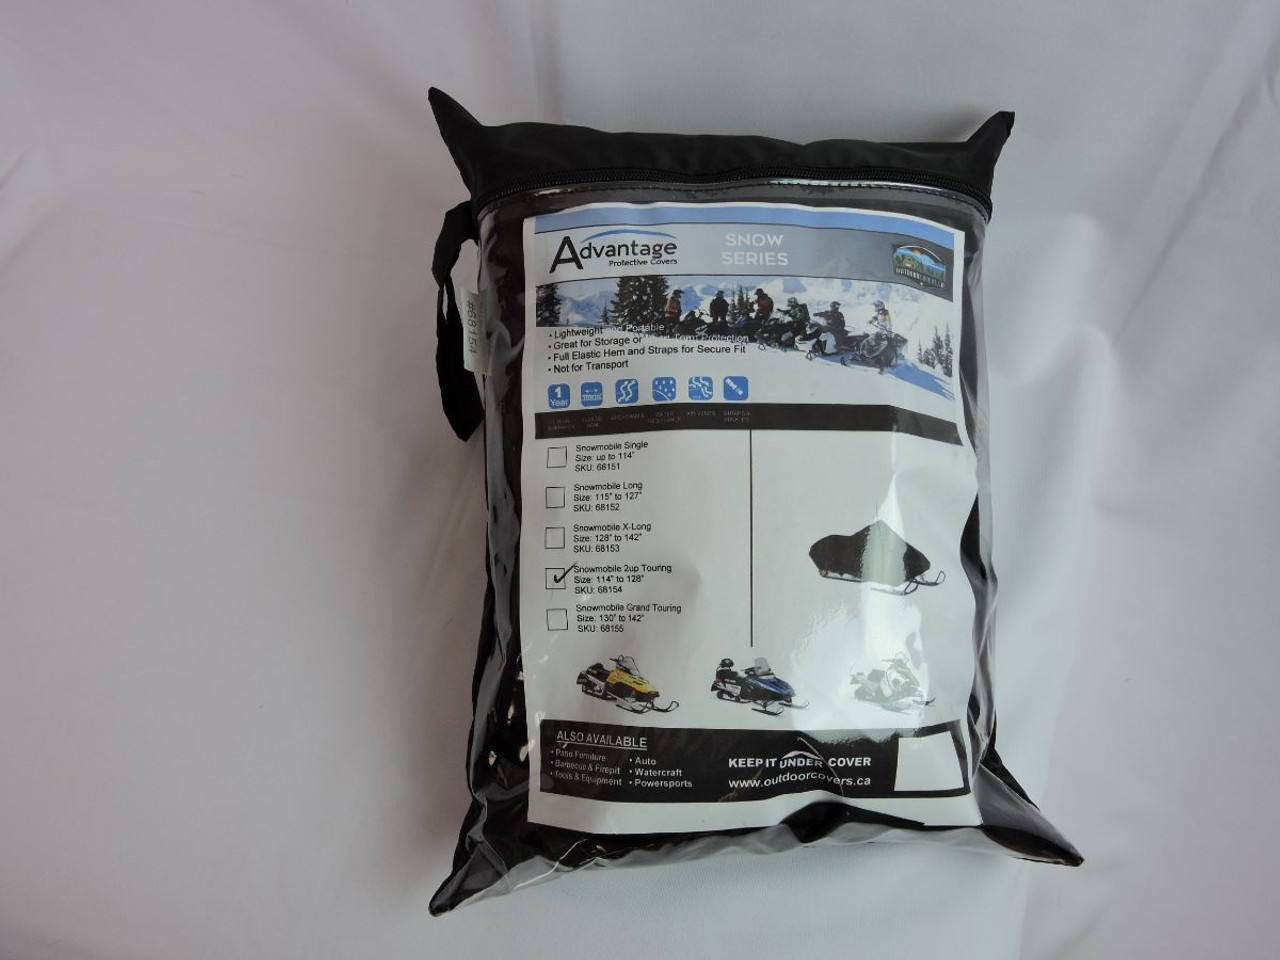 Advantage snowmobile cover storage bag all packed